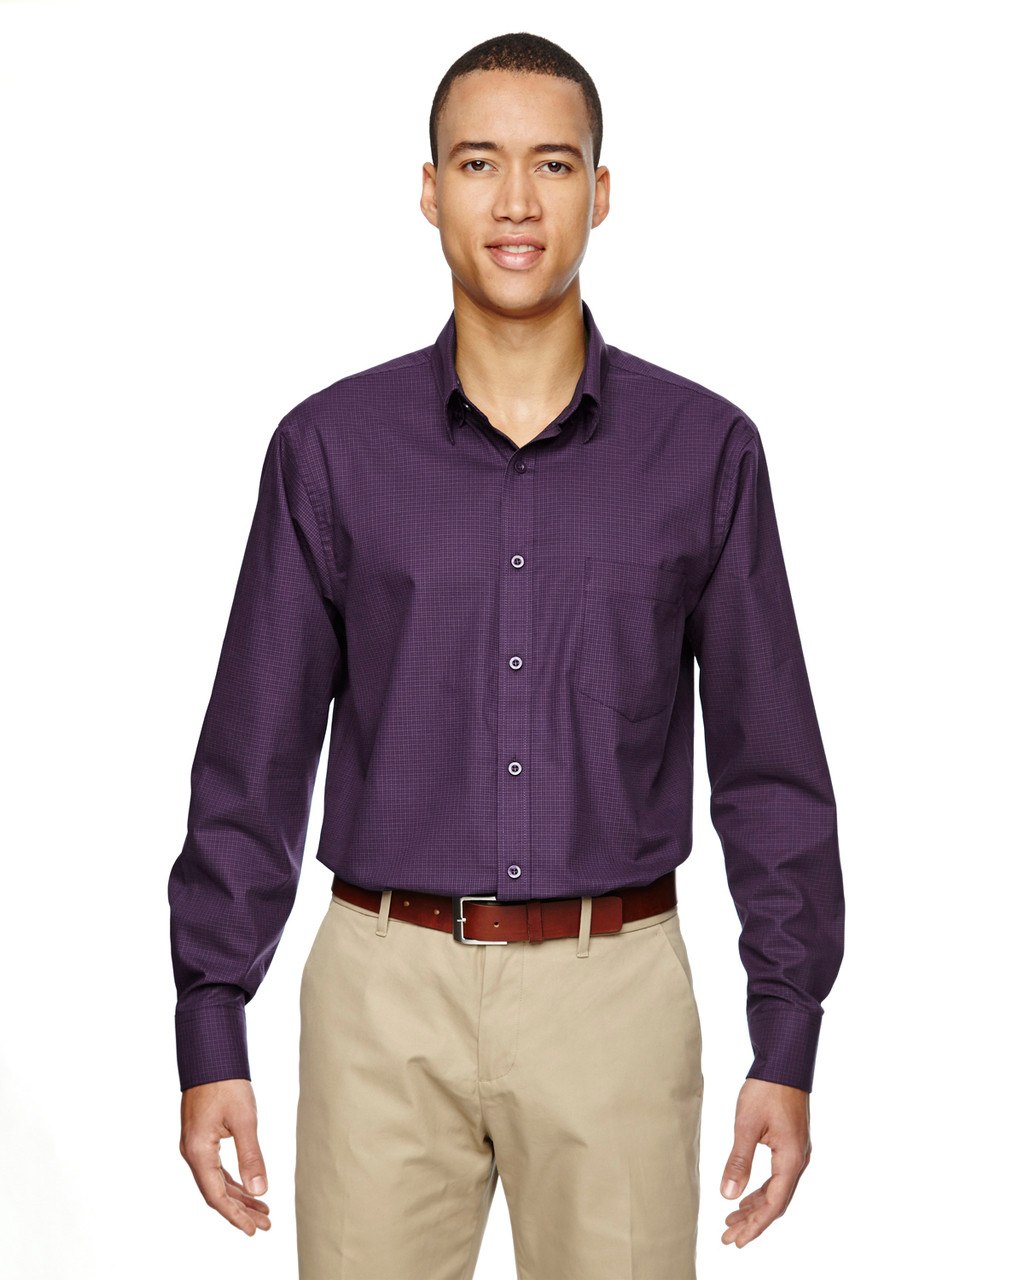 Mulbry Purple 87043 North End Paramount Wrinkle-Resistant Cotton Blend Twill Checkered Shirt | Blankclothing.ca